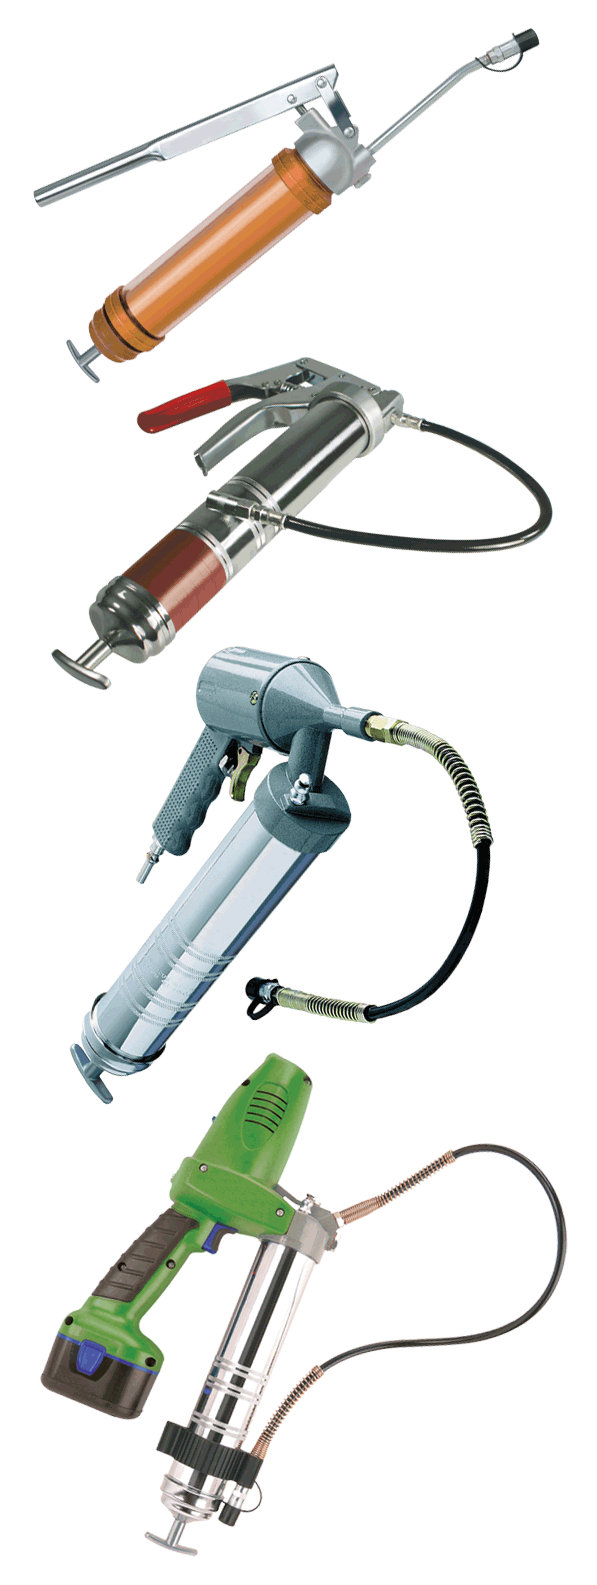 hight resolution of grease guns have three ways in which they can be powered by hand air or electricity aside from these variations the hand powered or manual grease guns